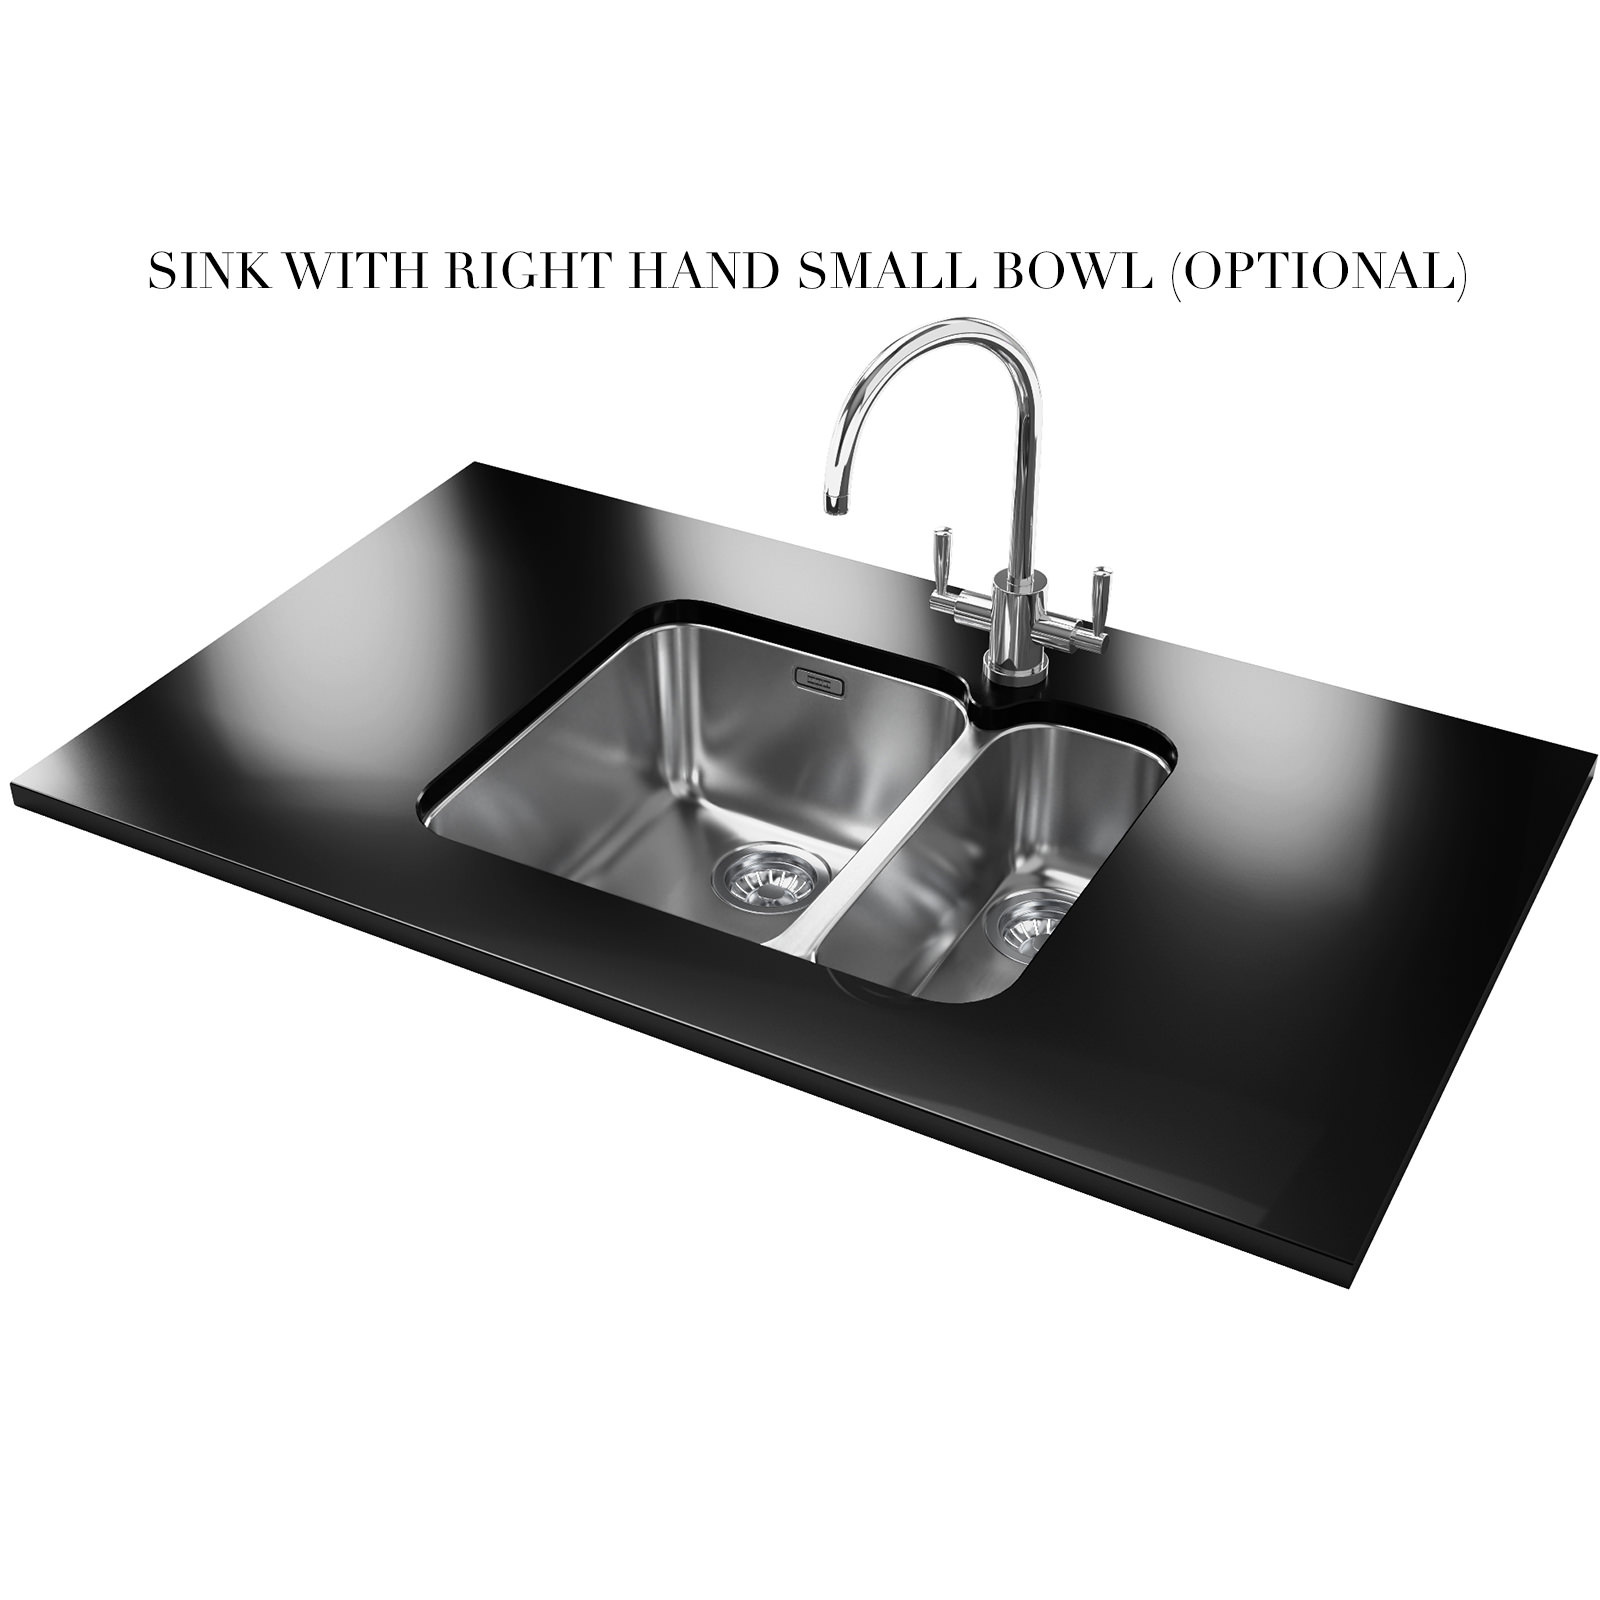 Franke Sple Great Simple Franke Gax Undermount Sink Reviews With